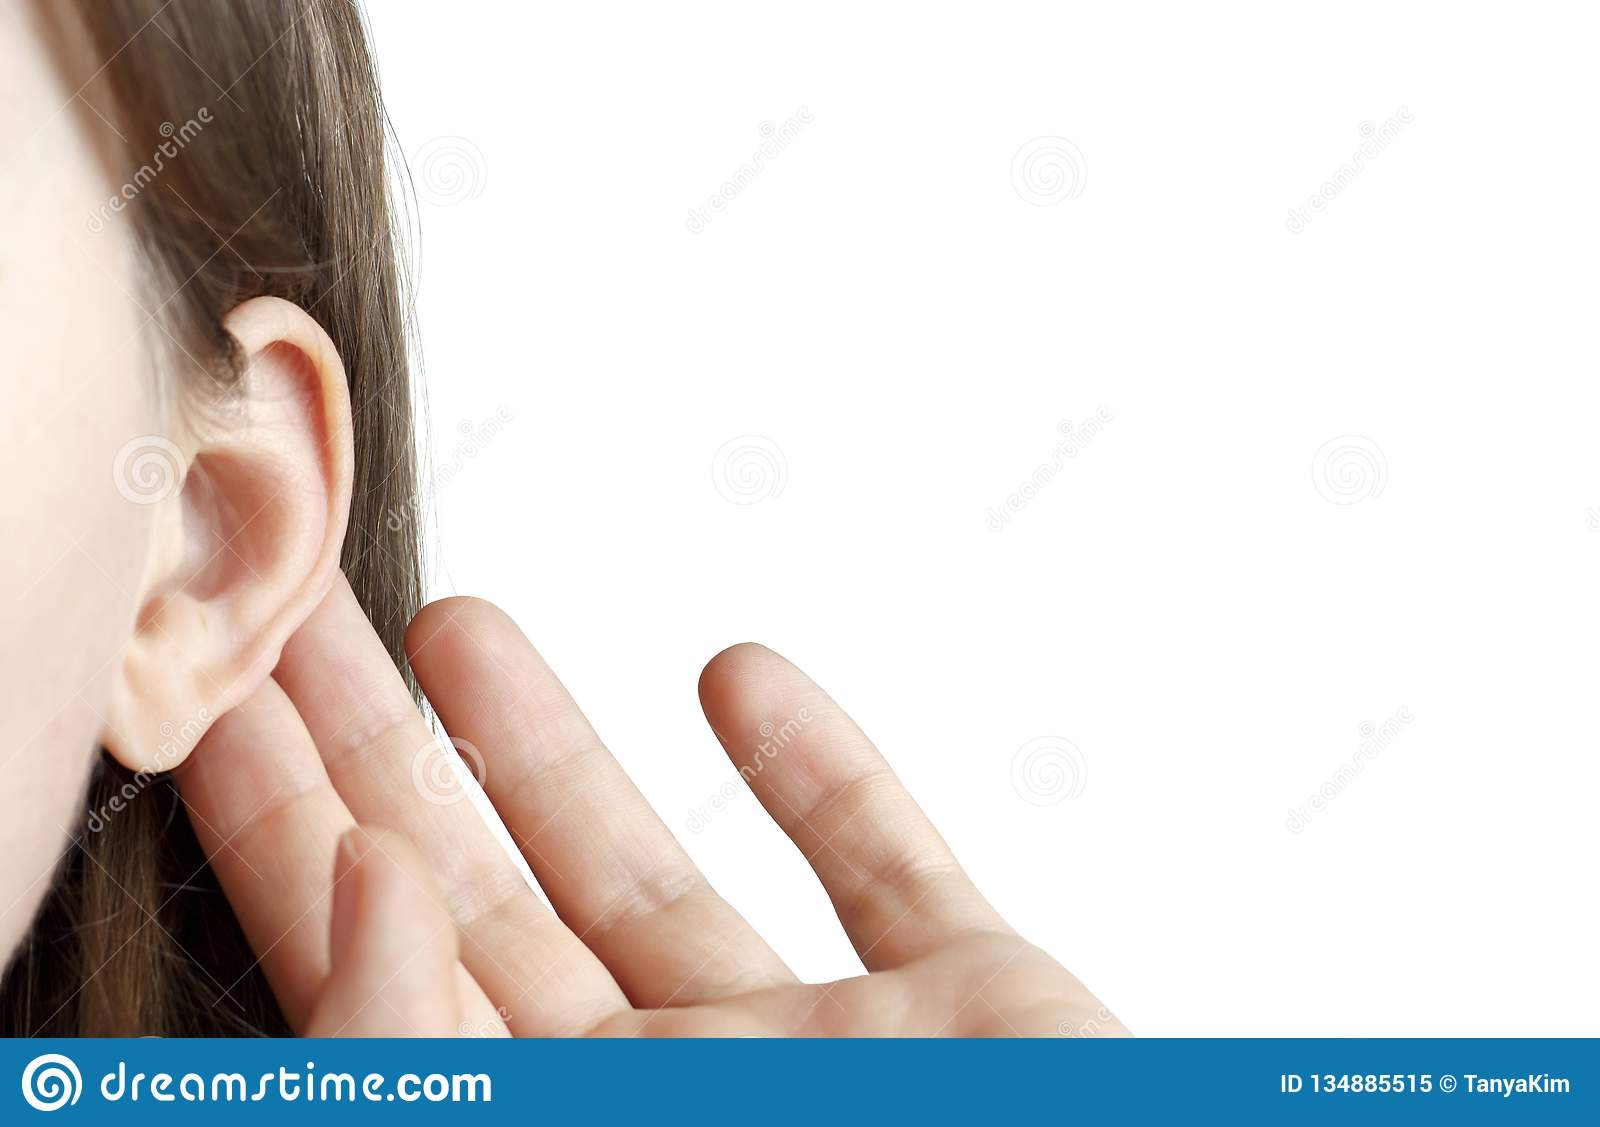 The girl listens attentively with her palm to her ear, close-up isolated on white background, indoors, the news concept